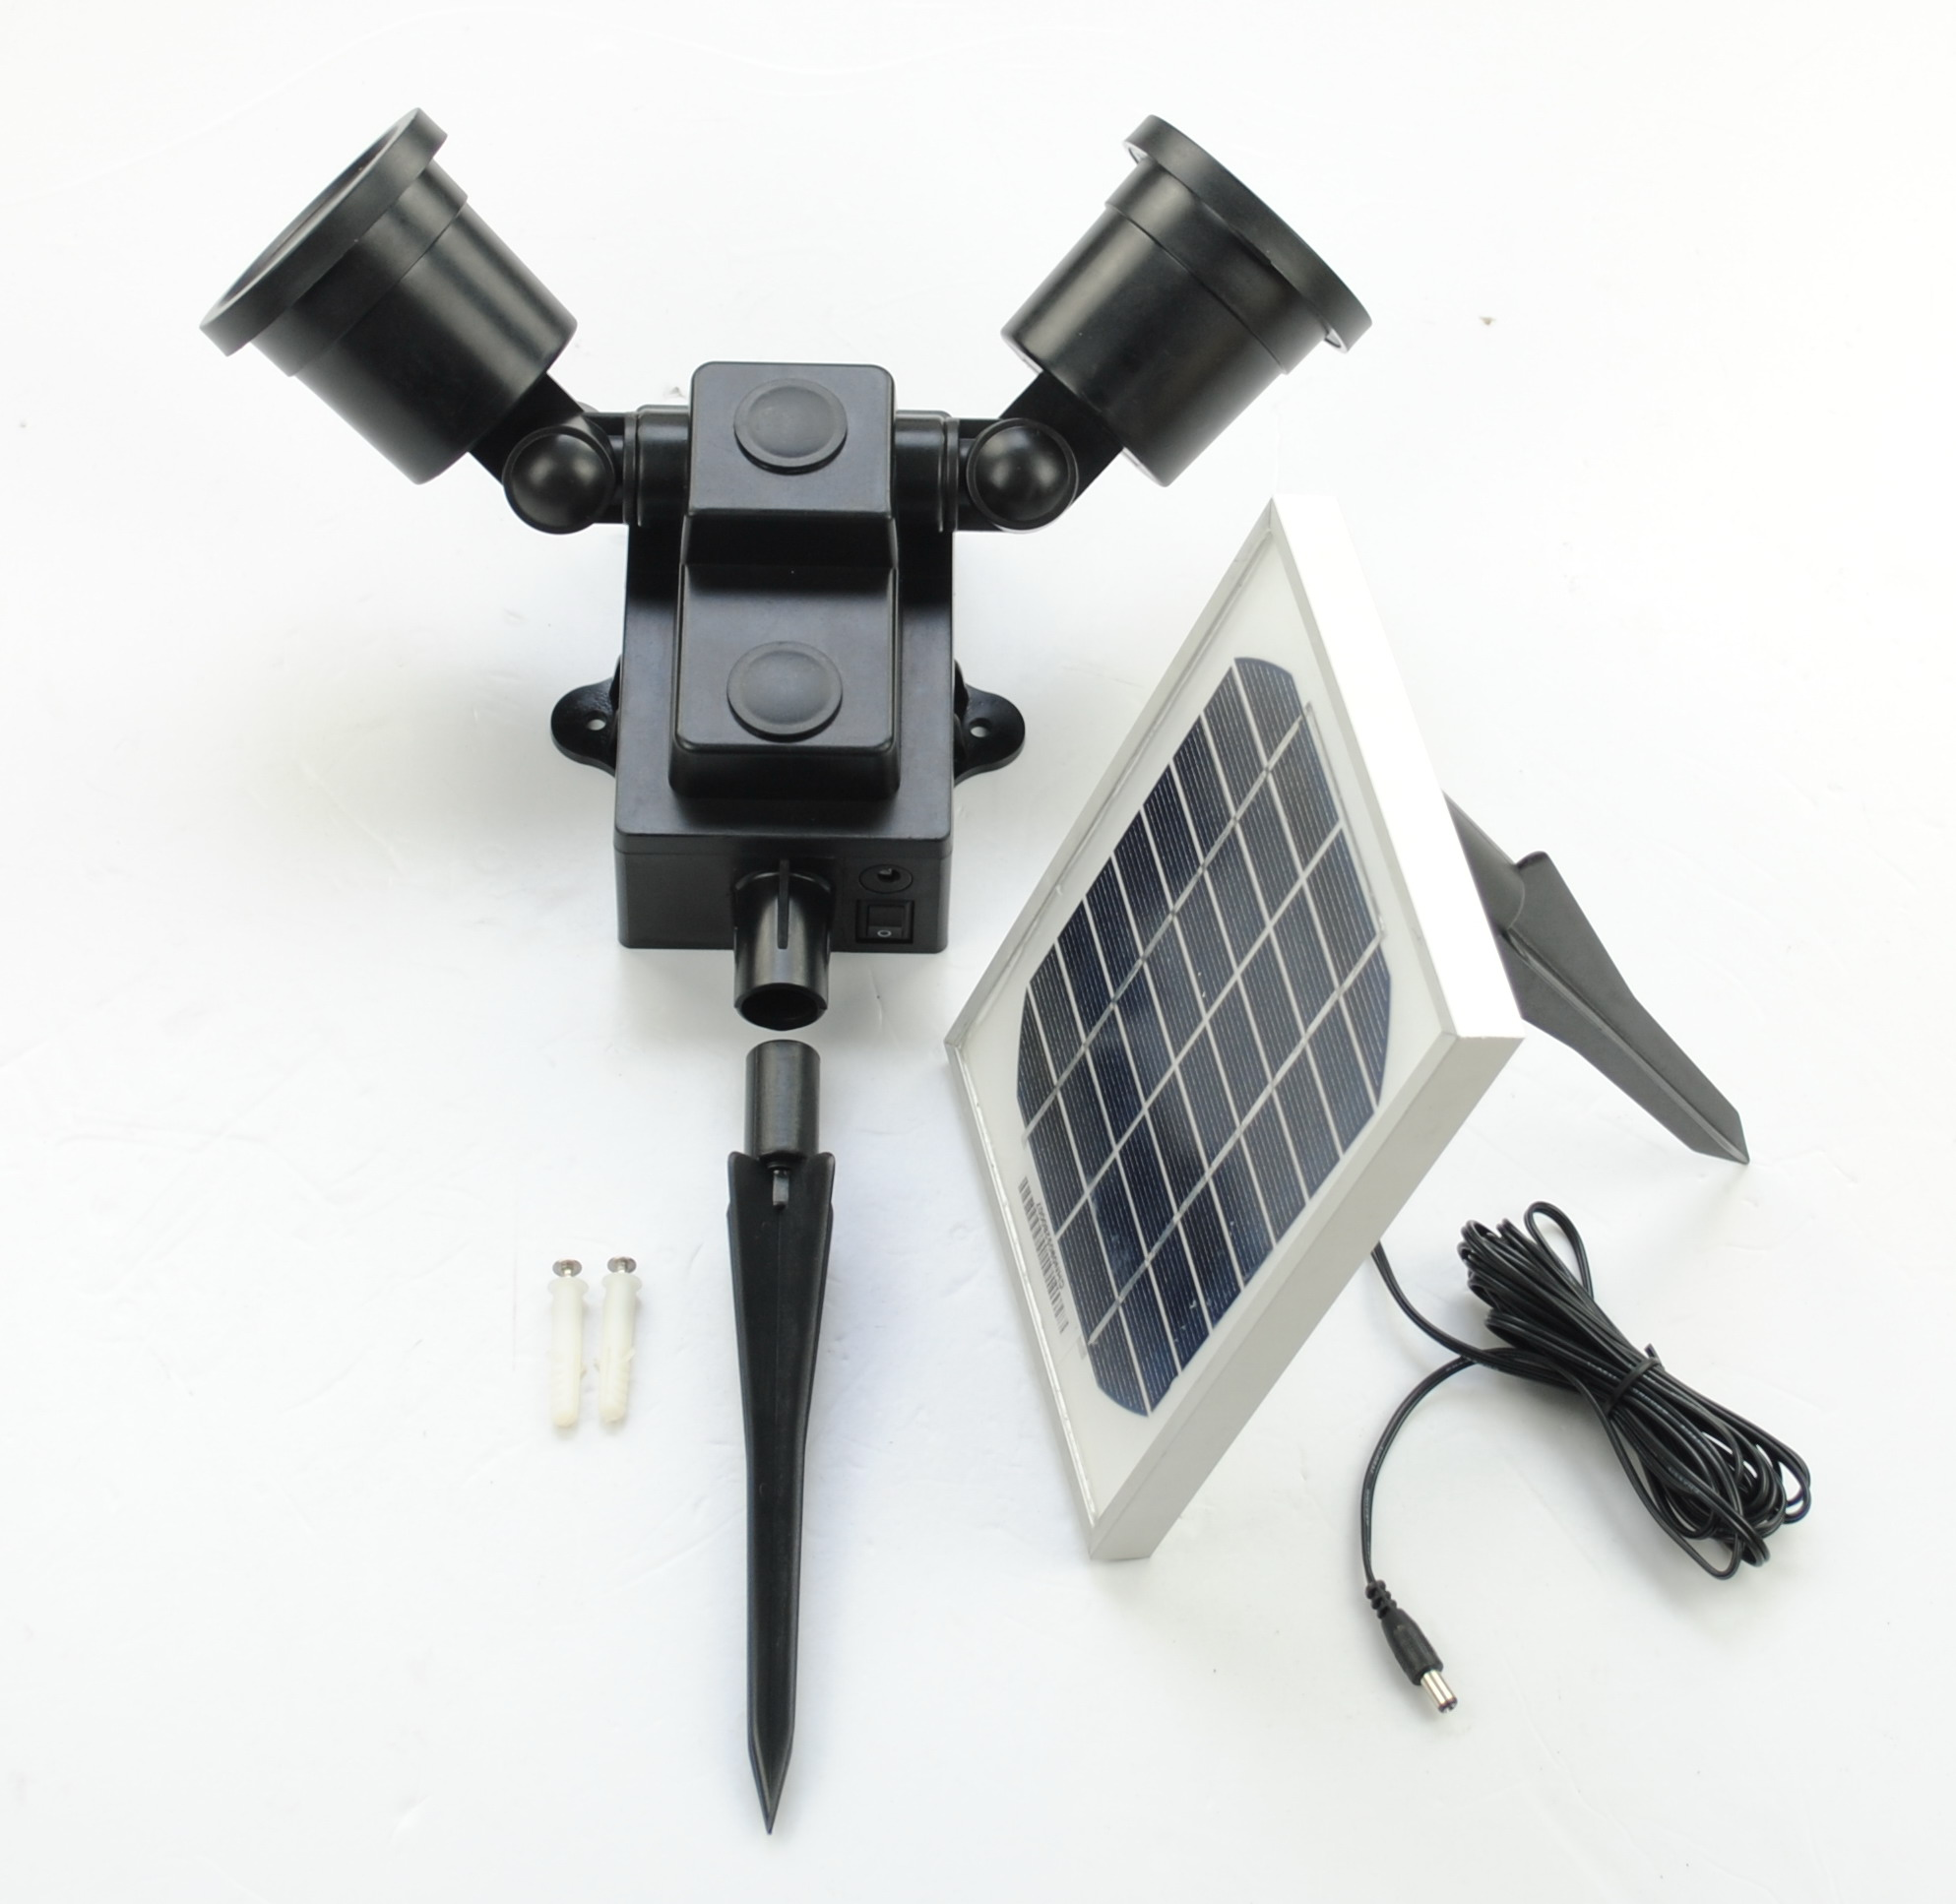 Outside Wall Lights Solar Powered : Dual head 24 LED Outdoor Two Light Solar Powered Wall Mount Flood Light eBay